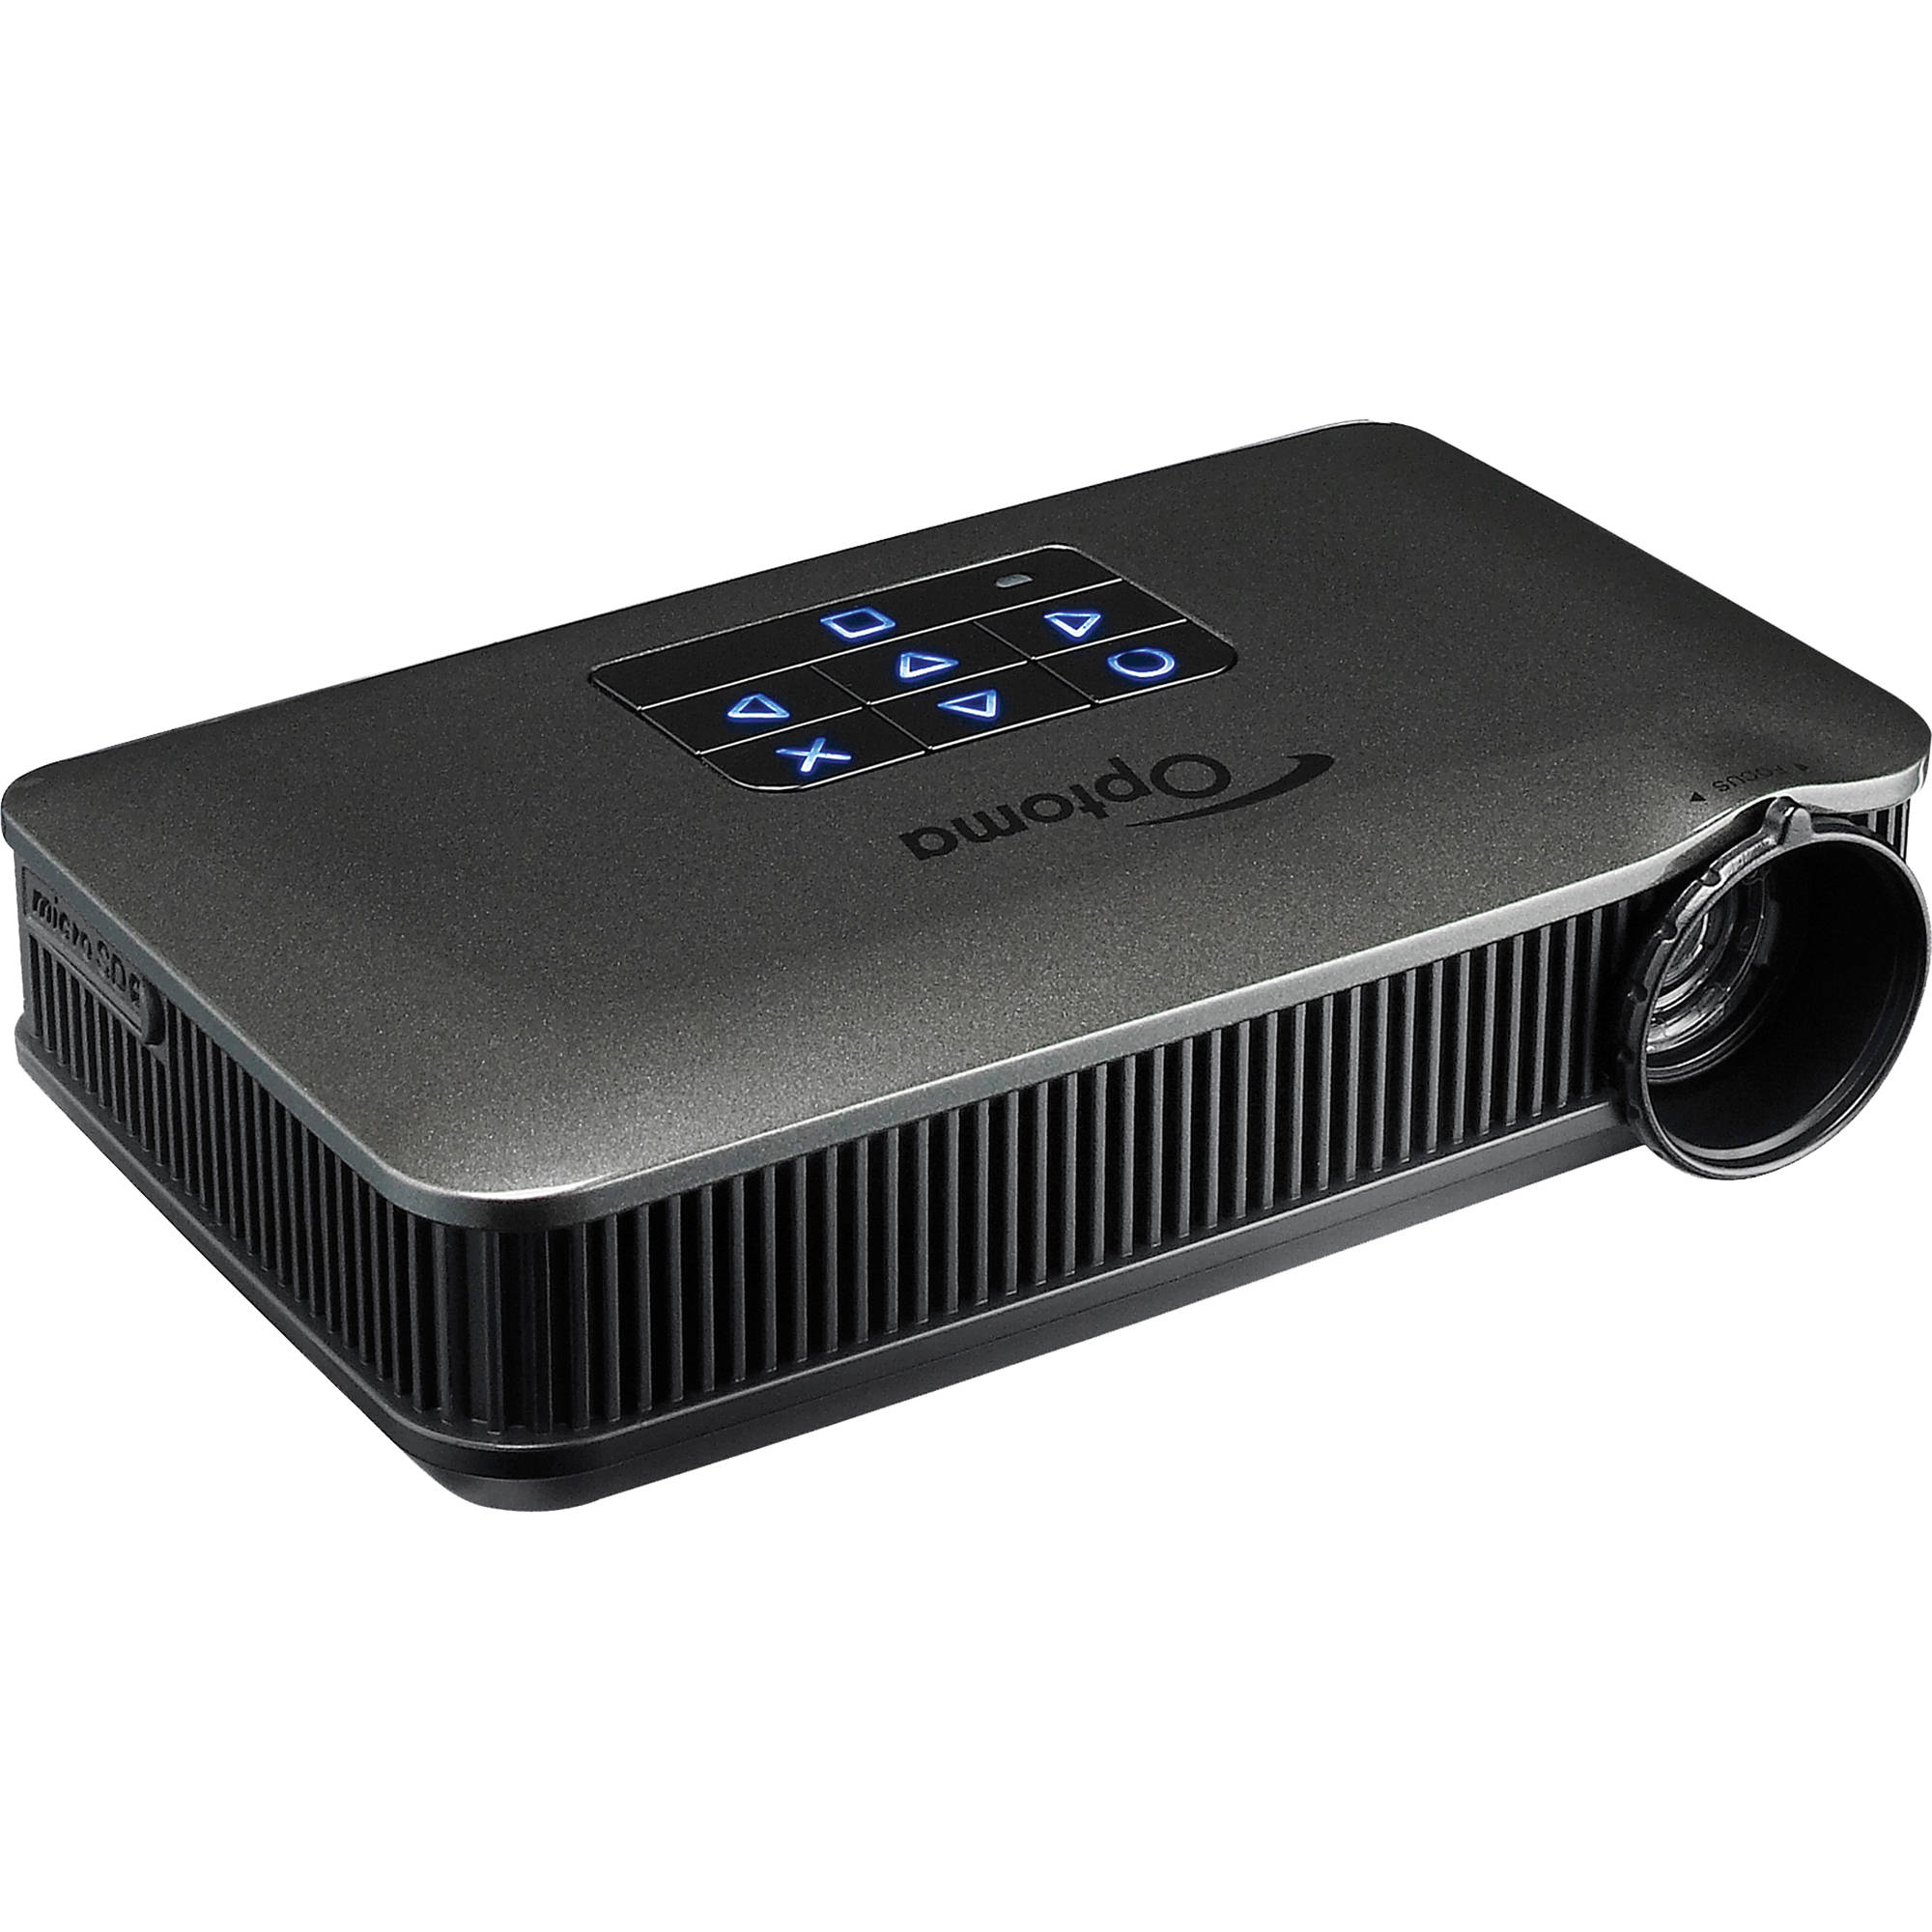 optoma technology pk320 pico pocket projector pk 320 b h photo